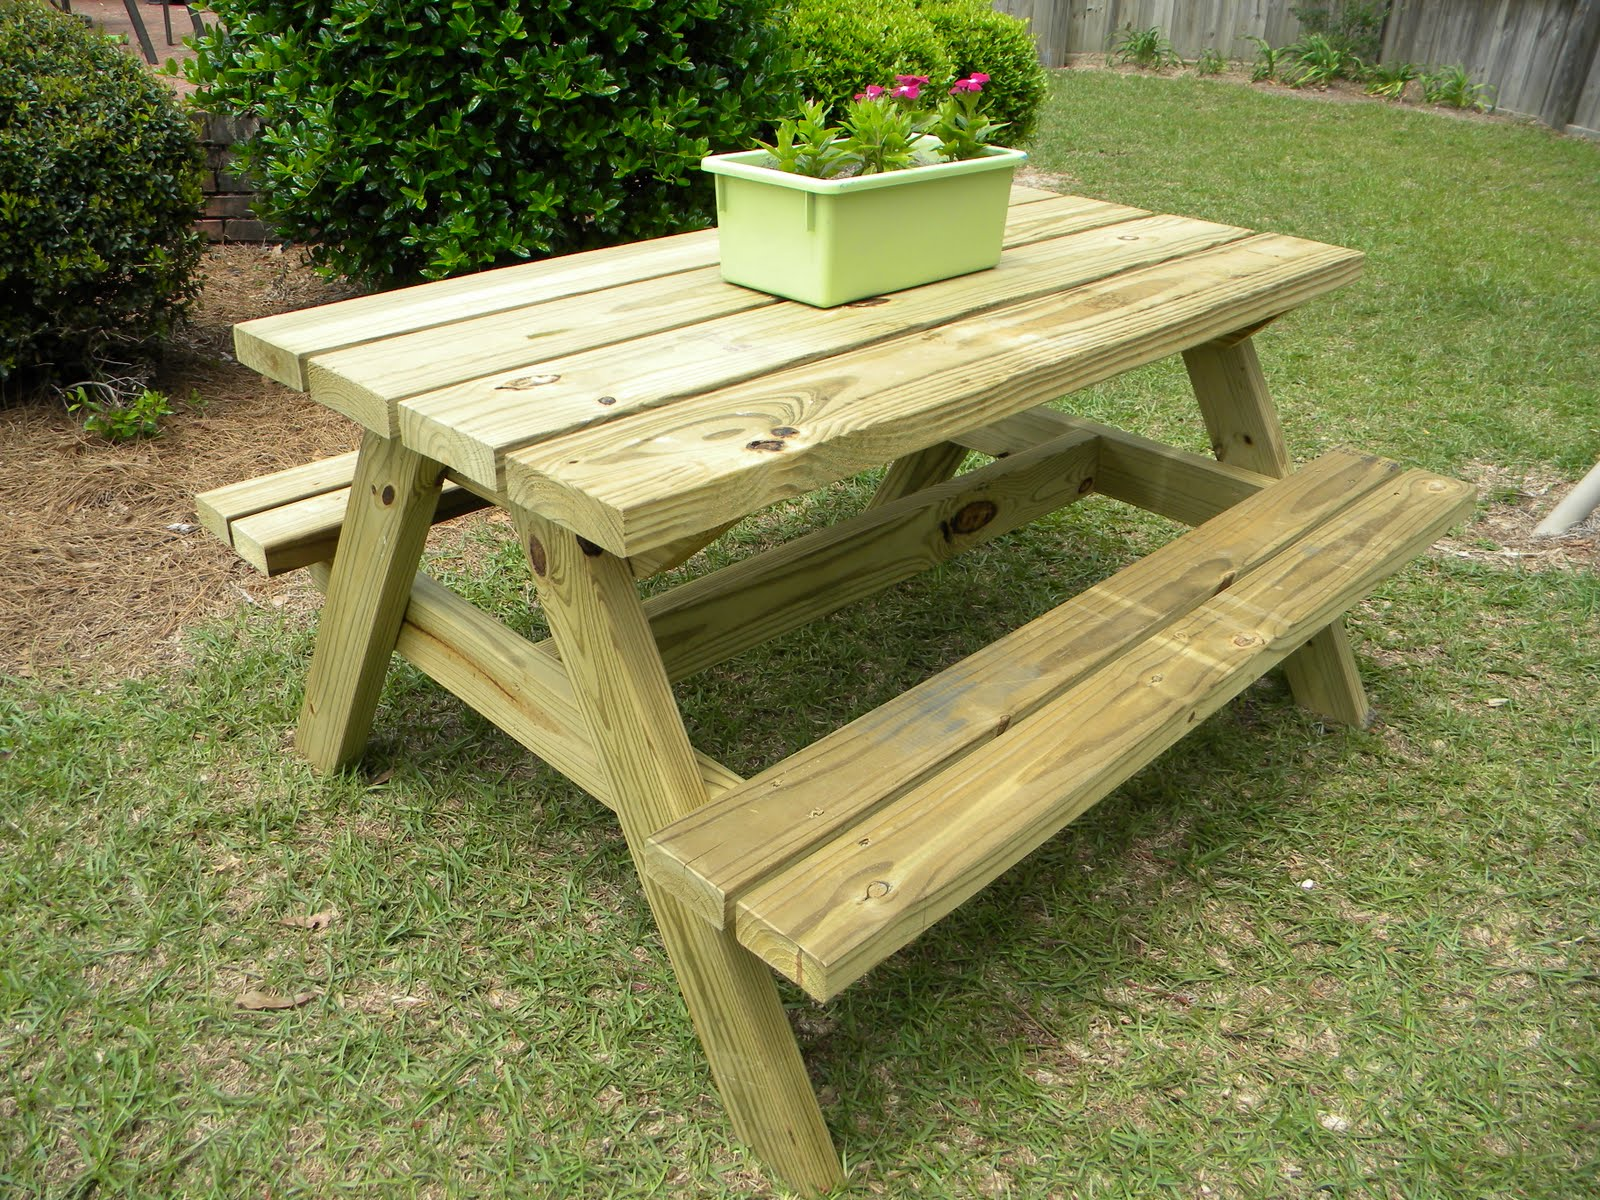 Guide to get picnic table with built in cooler plans the for Bancas de madera para jardin